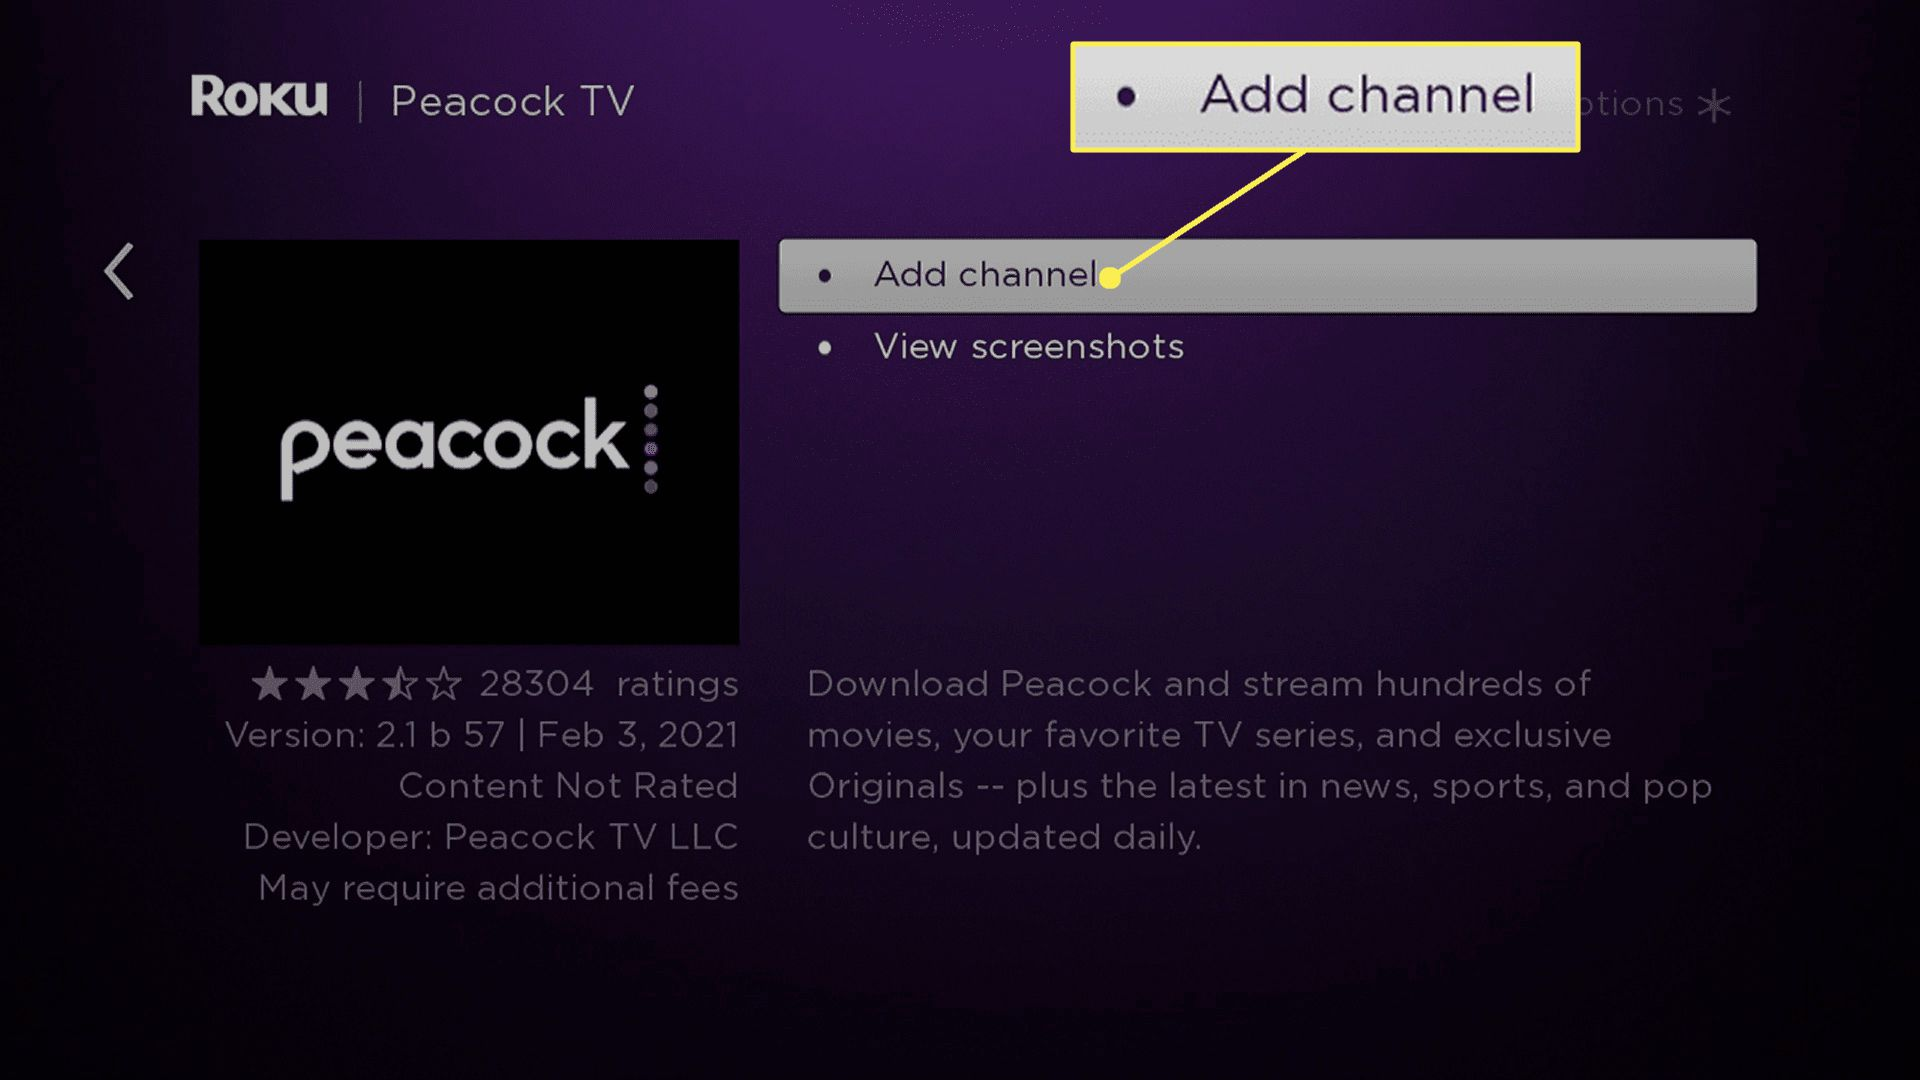 Add Chanel highlighted while adding to Peacock to Roku